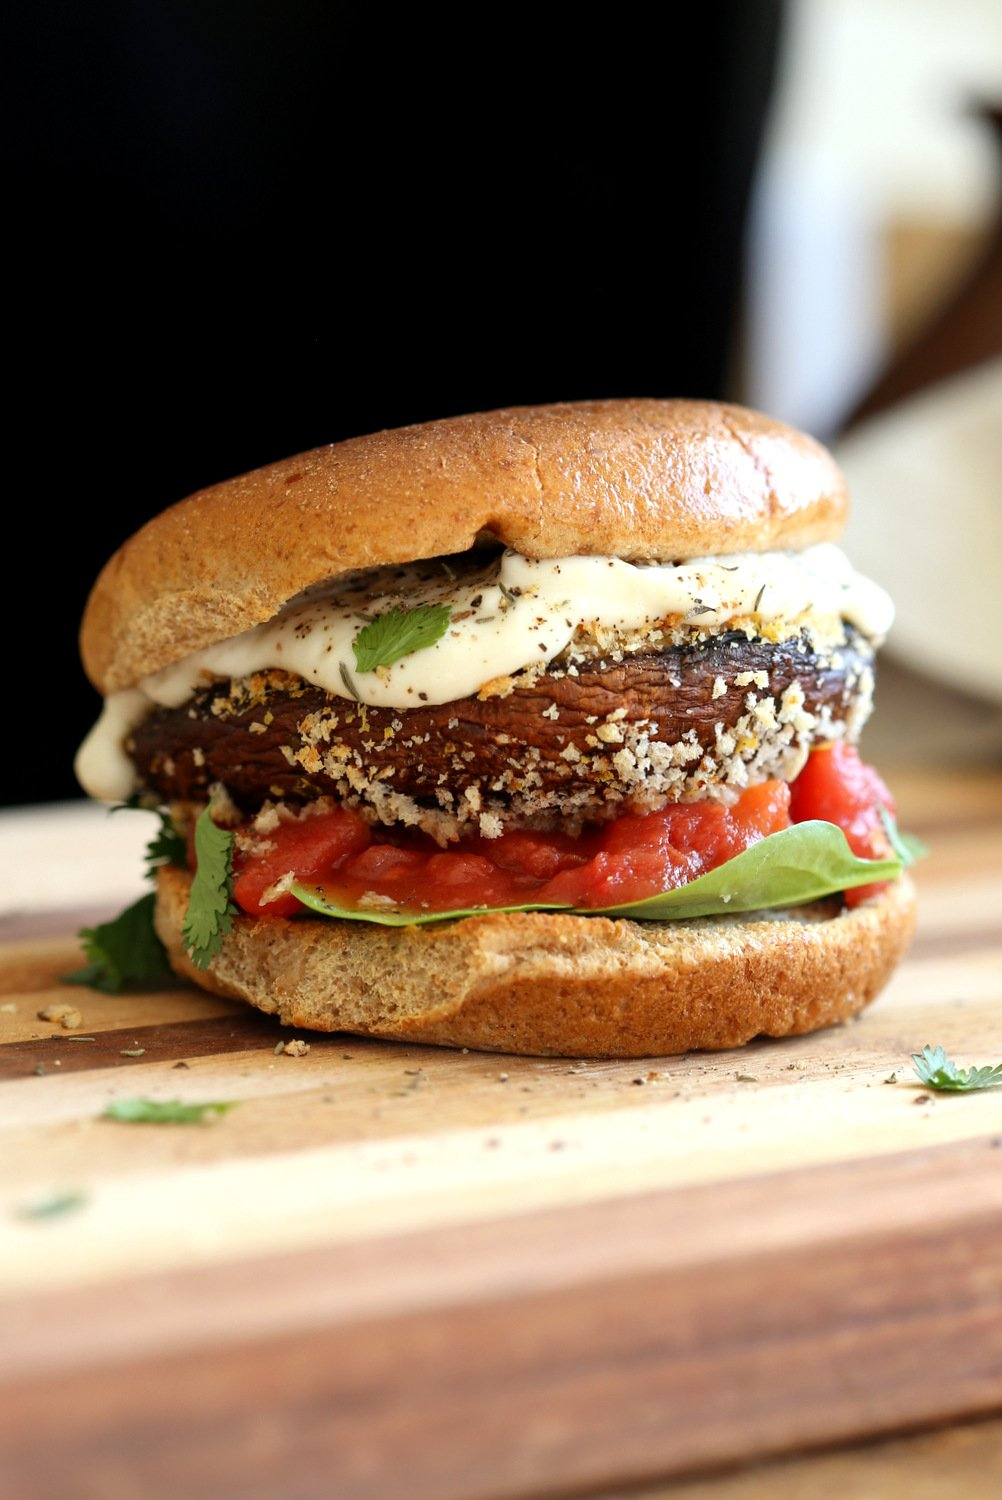 Our Vegan Portobello Mushroom Burger on a wood board against black background